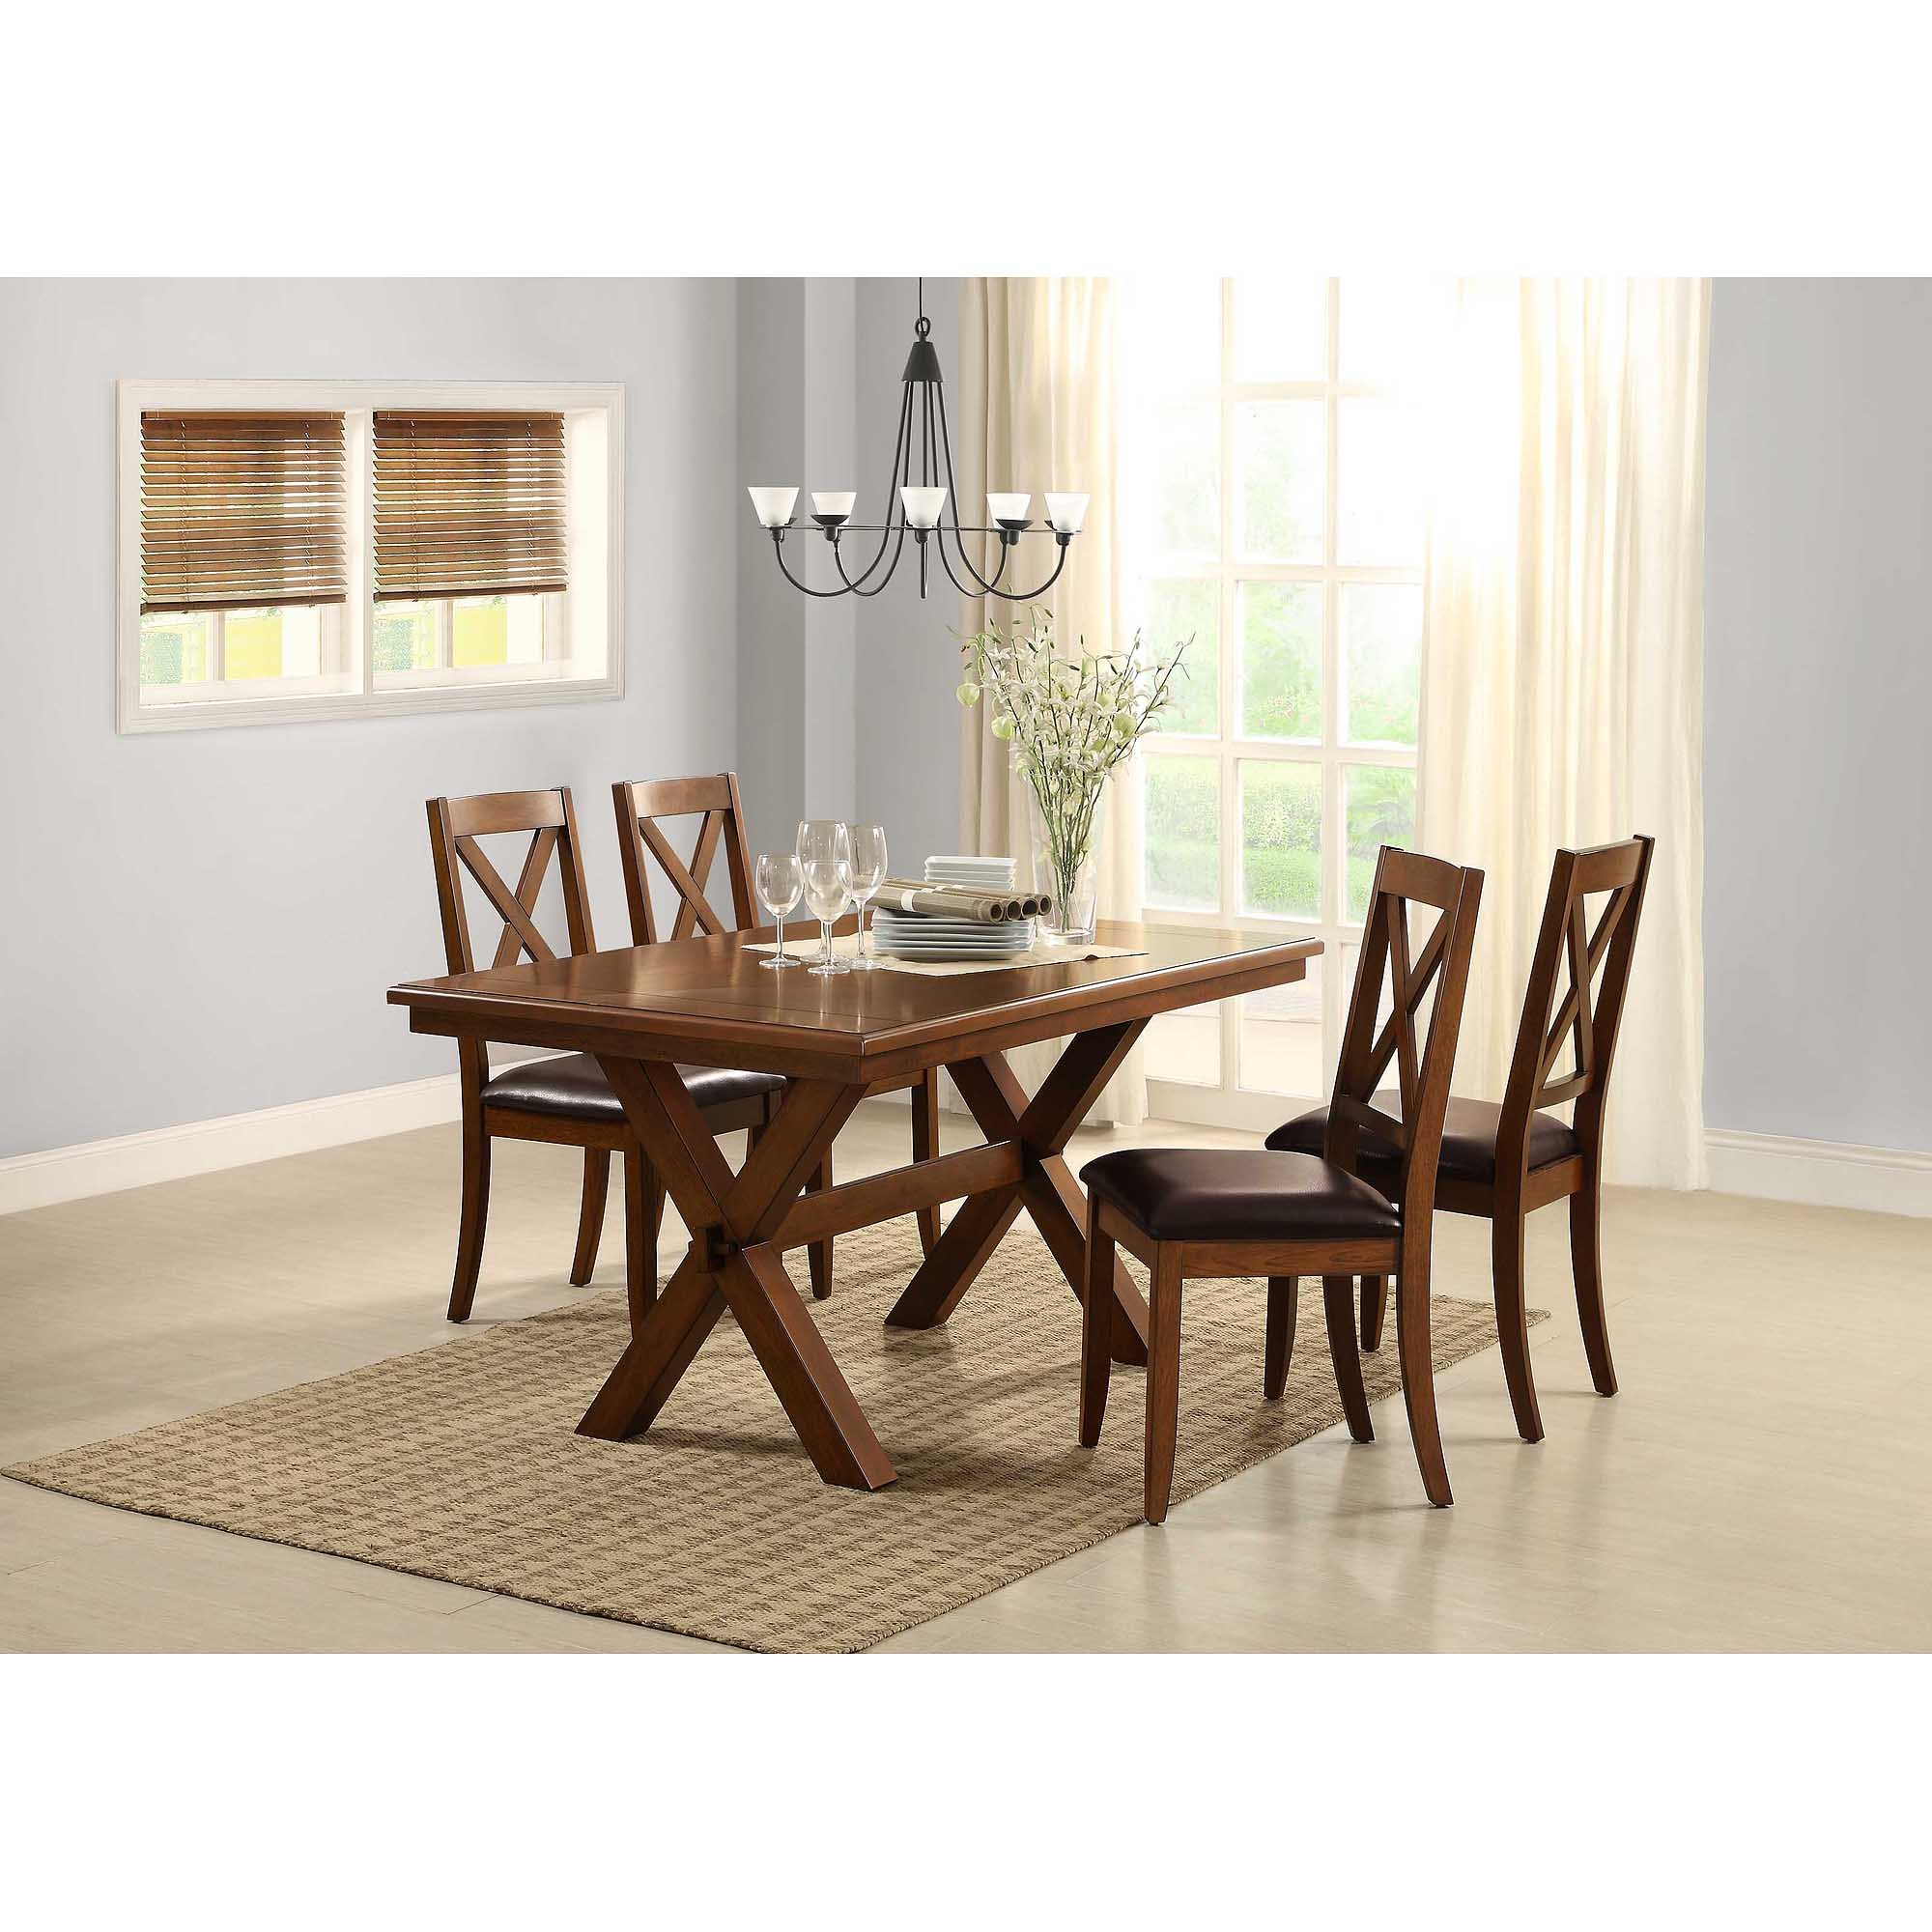 Better Homes Gardens Maddox Crossing Dining Table Brown Walmart ...